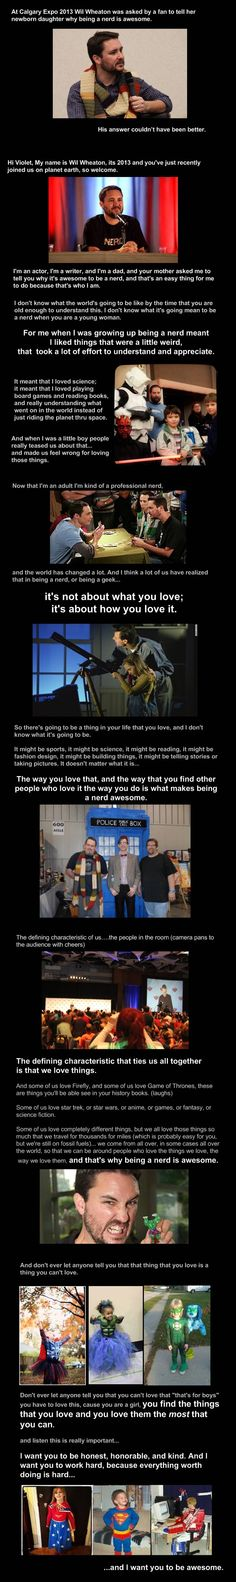 Wil Wheaton was asked by a fan to tell her newborn daughter why being a nerd is awesome.  His answer couldn't have been better.